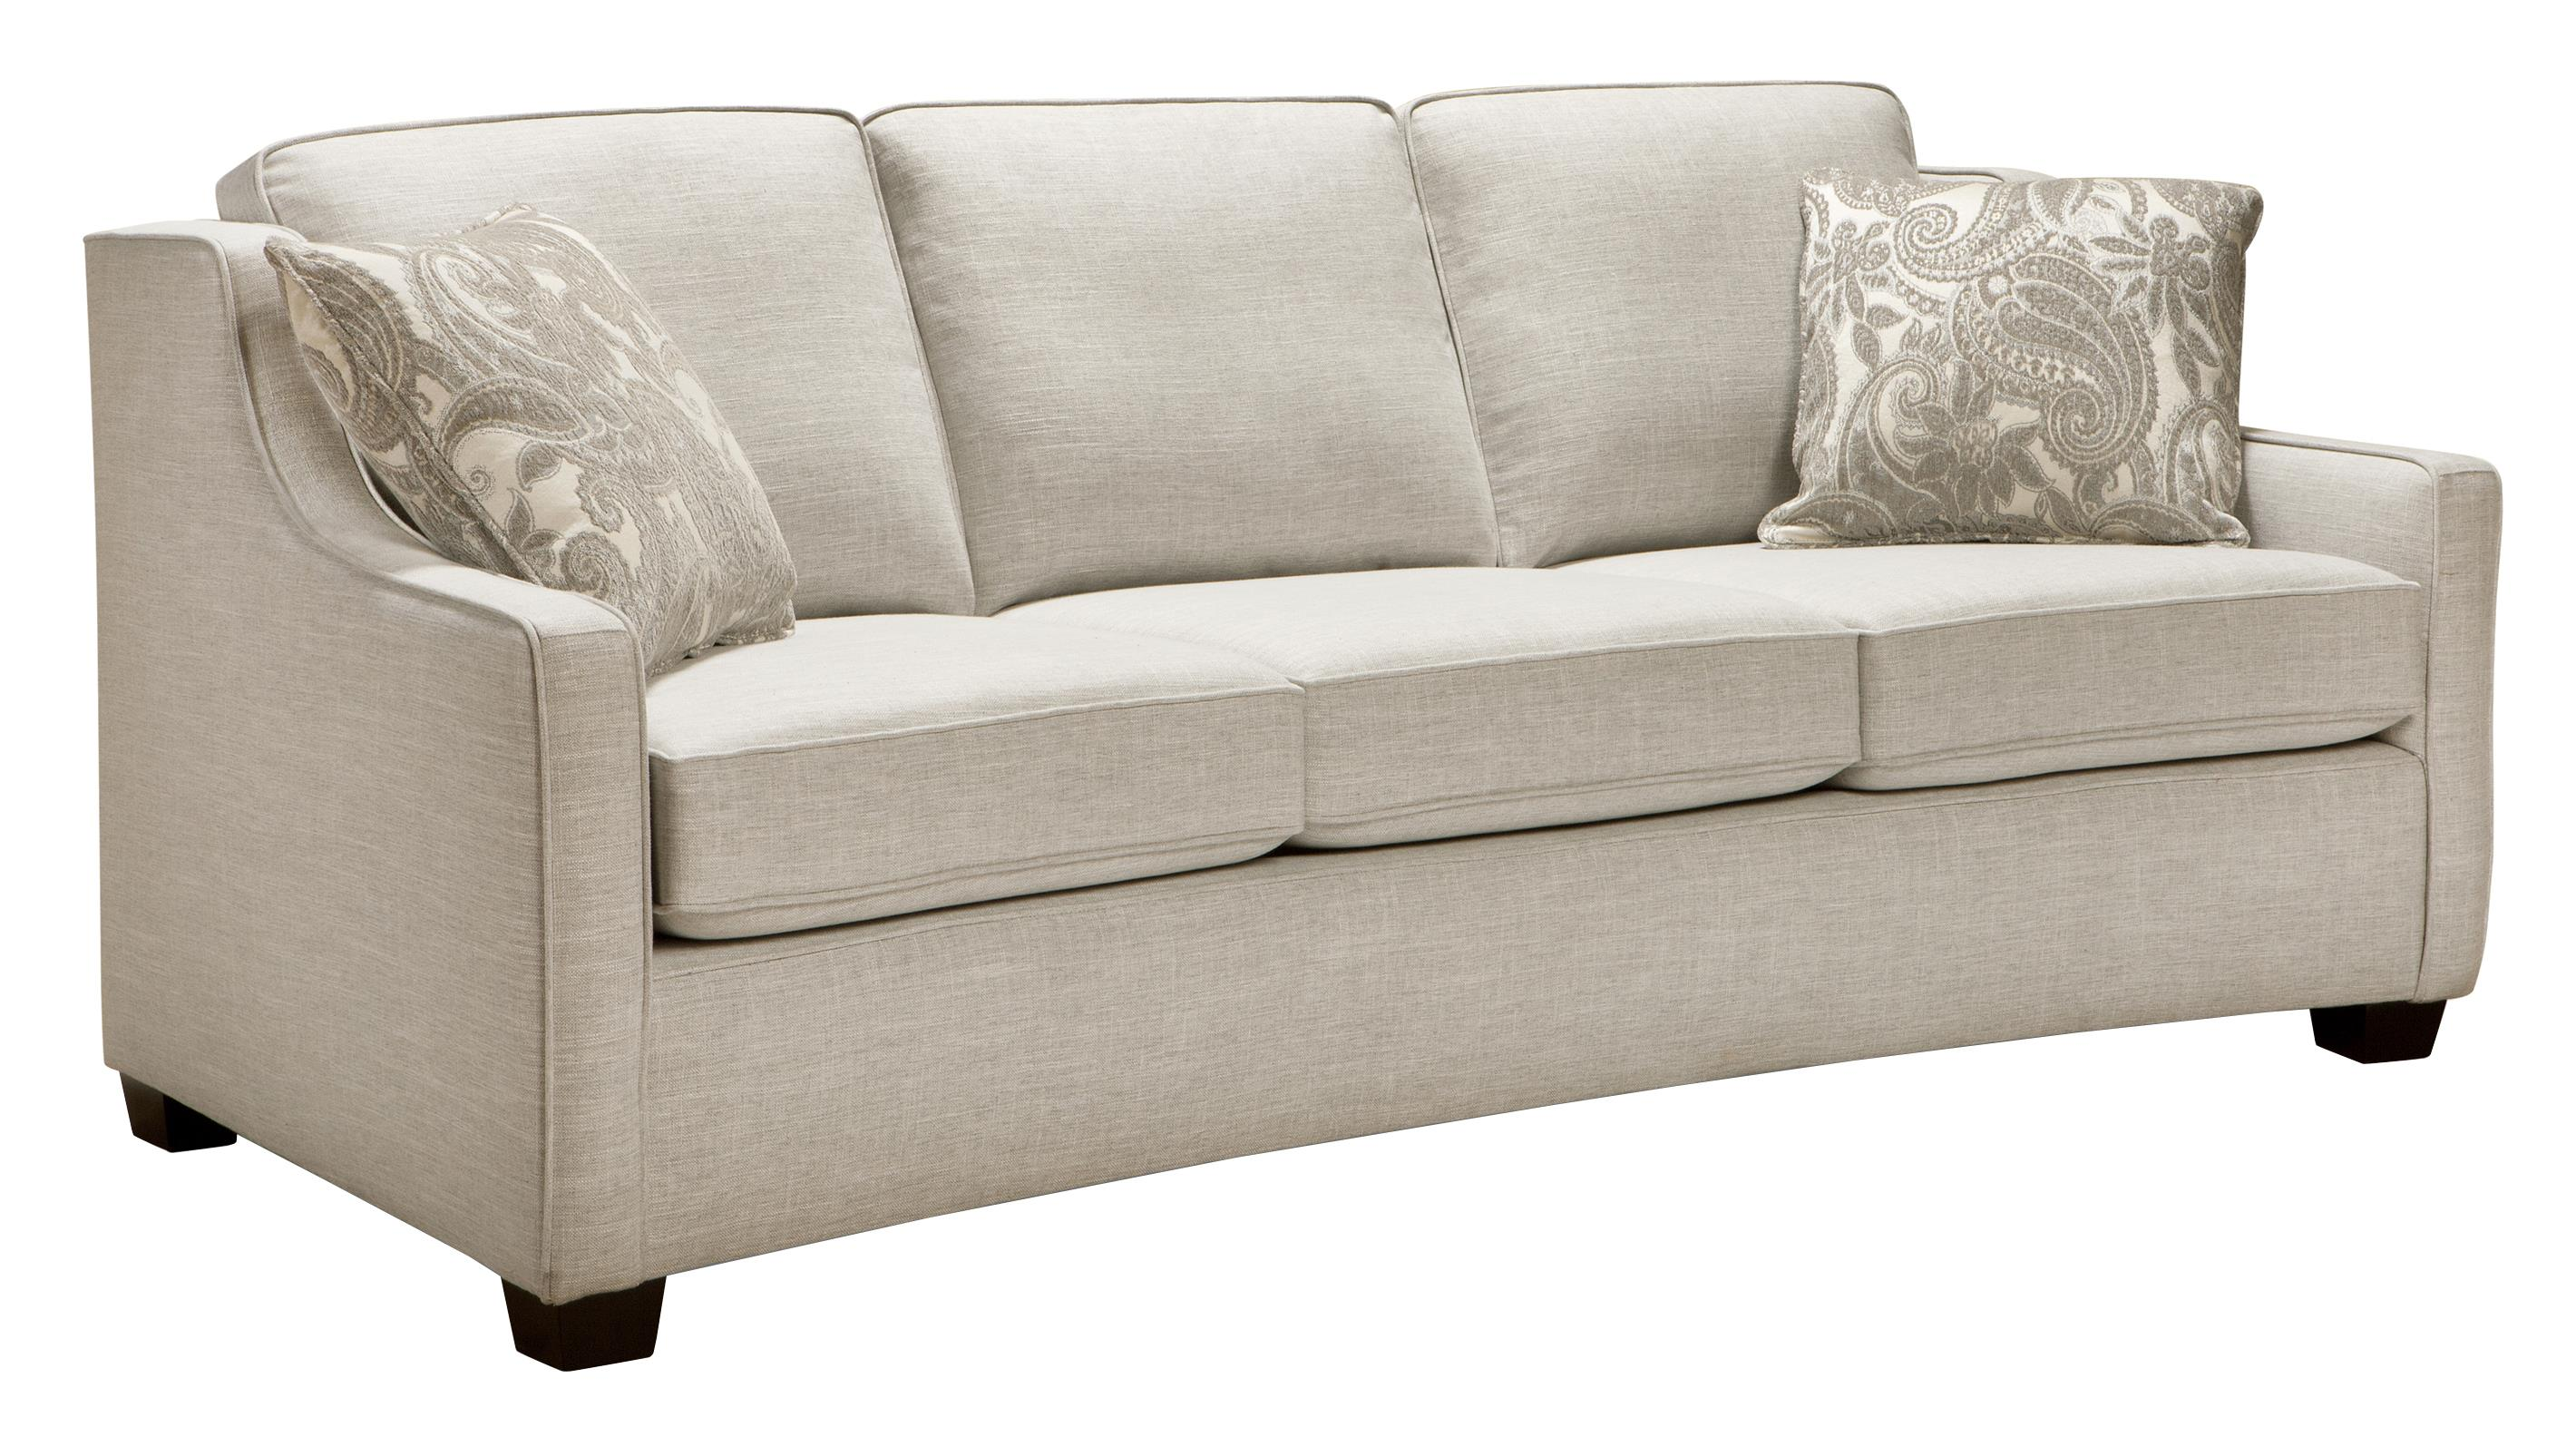 River Condo Sized Sofa by Southside Designs at Bennett's Furniture and Mattresses